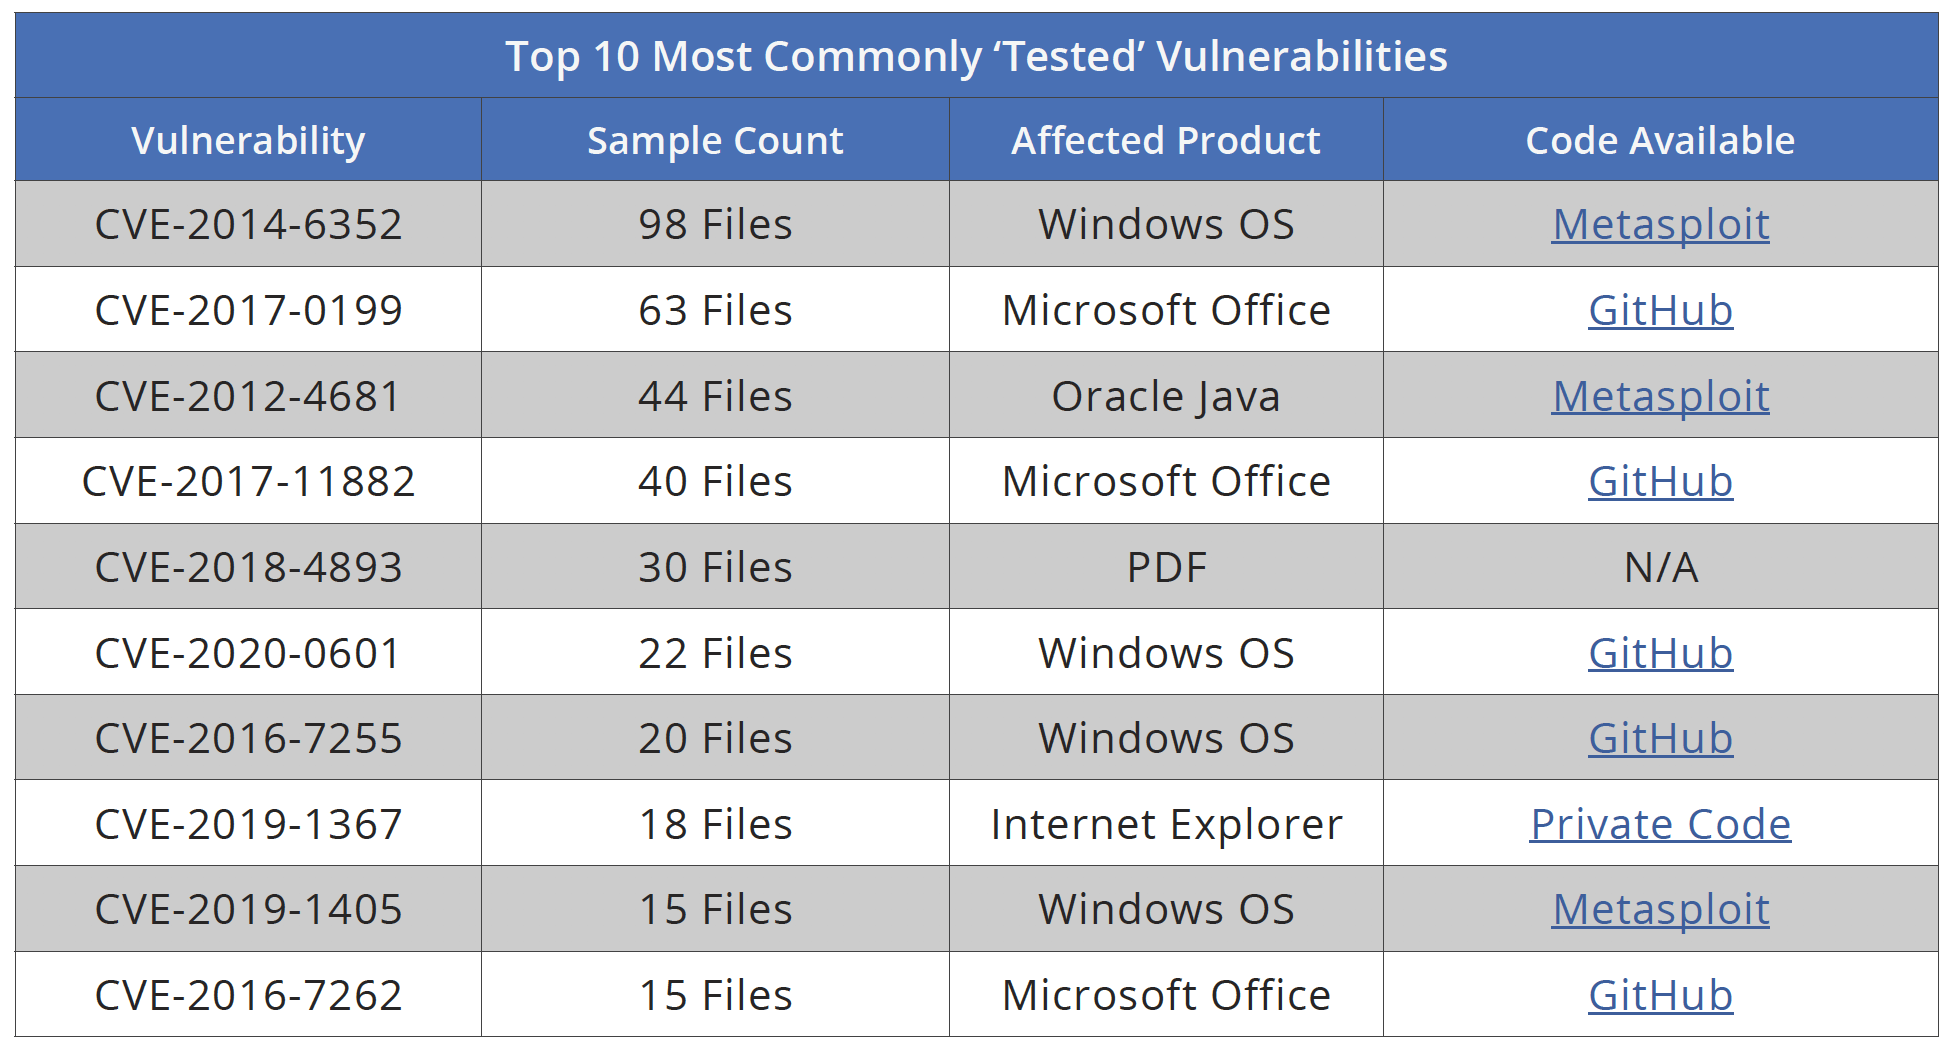 Top 10 Most Commonly Tested Vulnerabilities